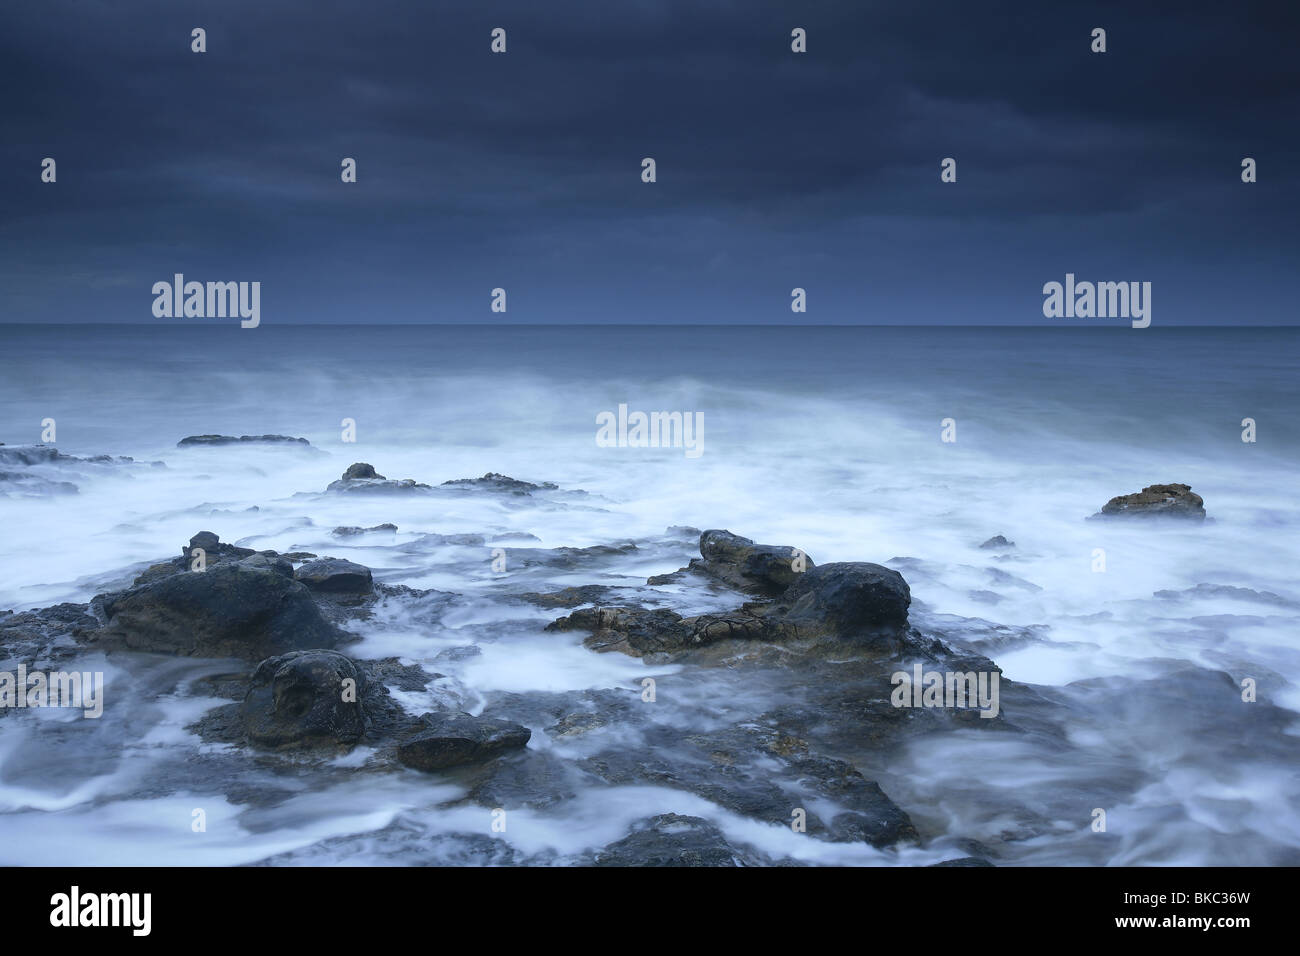 Sea surf and dark clouds at West side cliffs at Santa Cruz, California, USA. - Stock Image